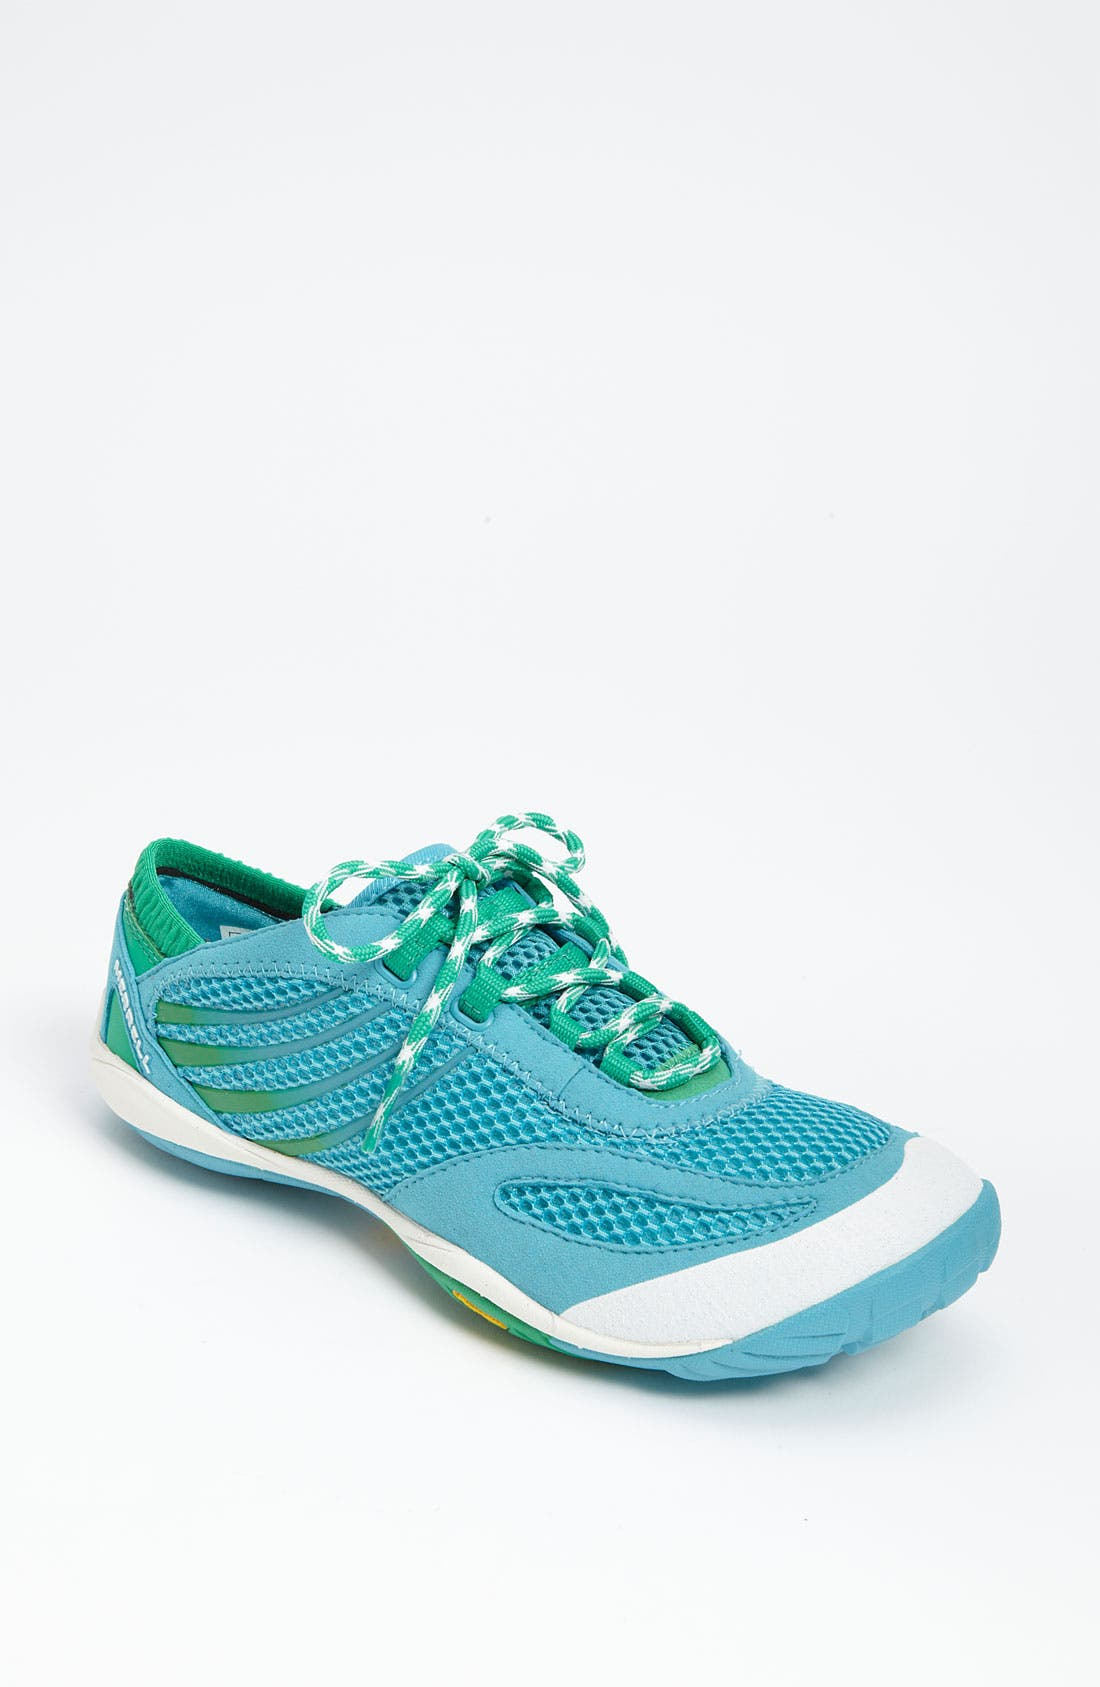 Alternate Image 1 Selected - Merrell 'Pace Glove' Running Shoe (Women)